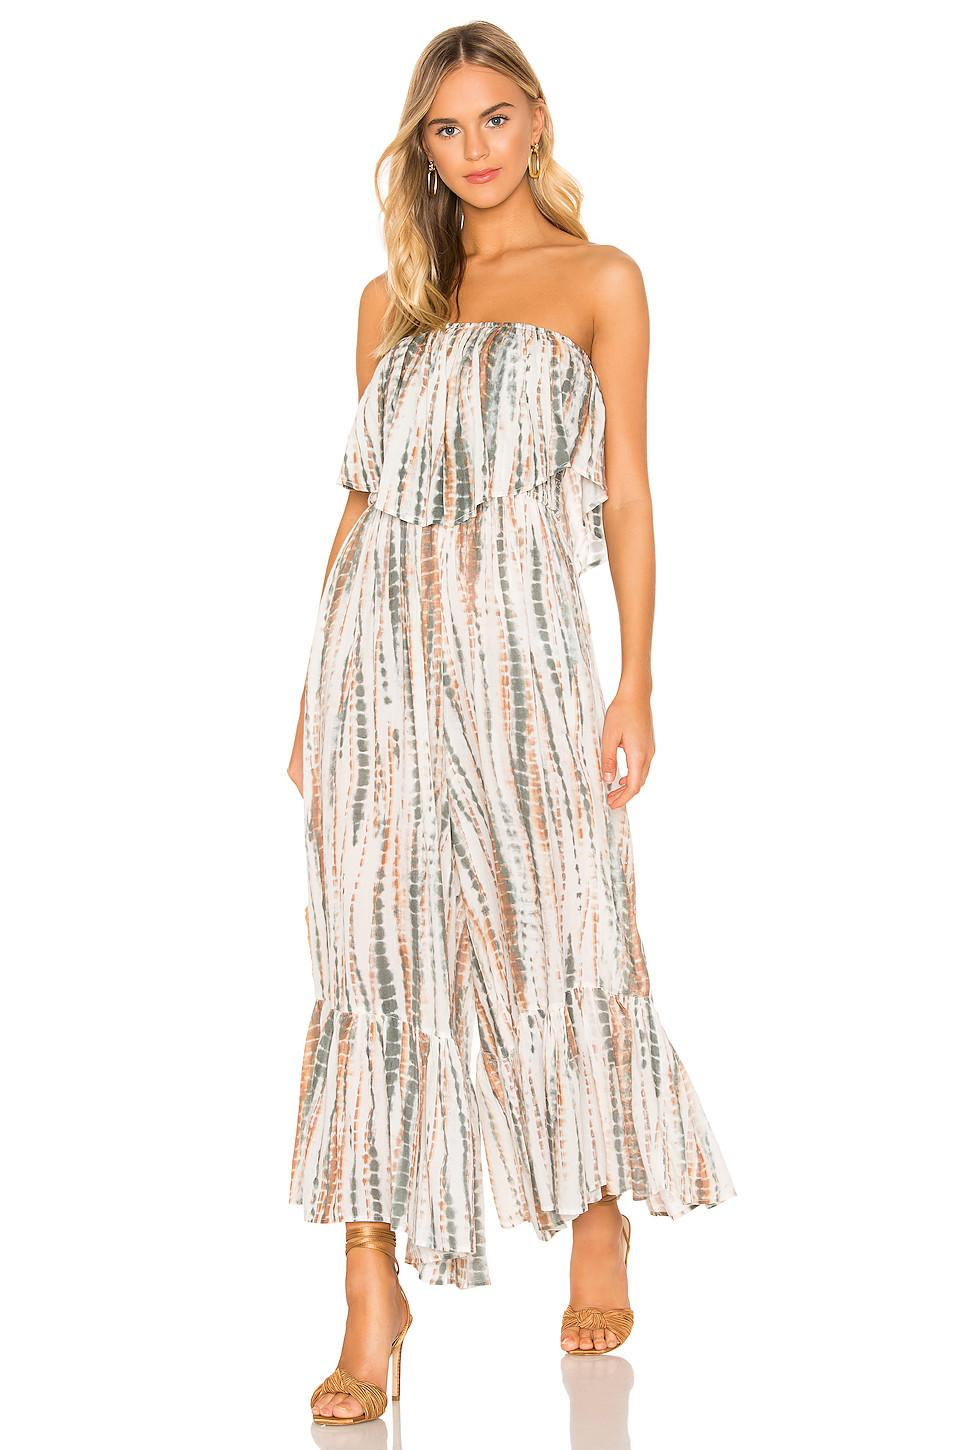 dbc1051b92f Free People - White Summer Vibes Tube Jumpsuit - Lyst. View fullscreen